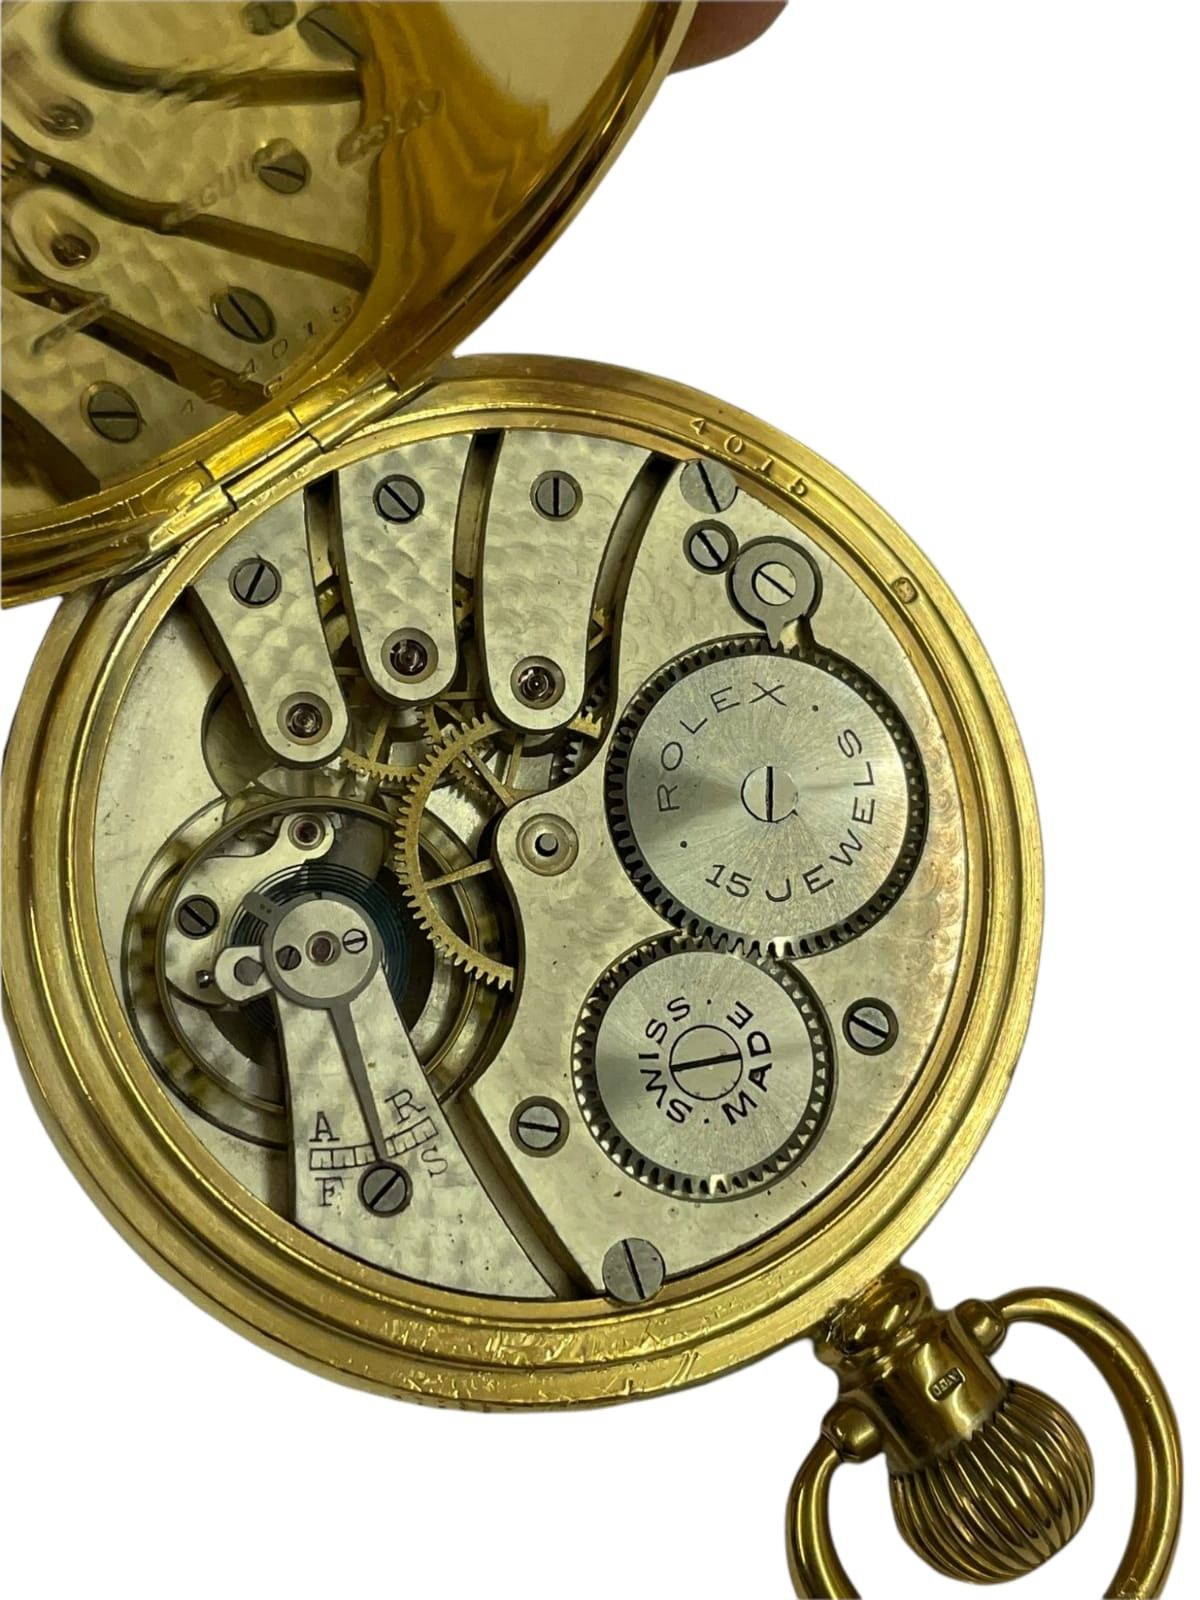 Vintage Masonic Rolex pocket watch with stand good condition and good working order but no - Image 7 of 21